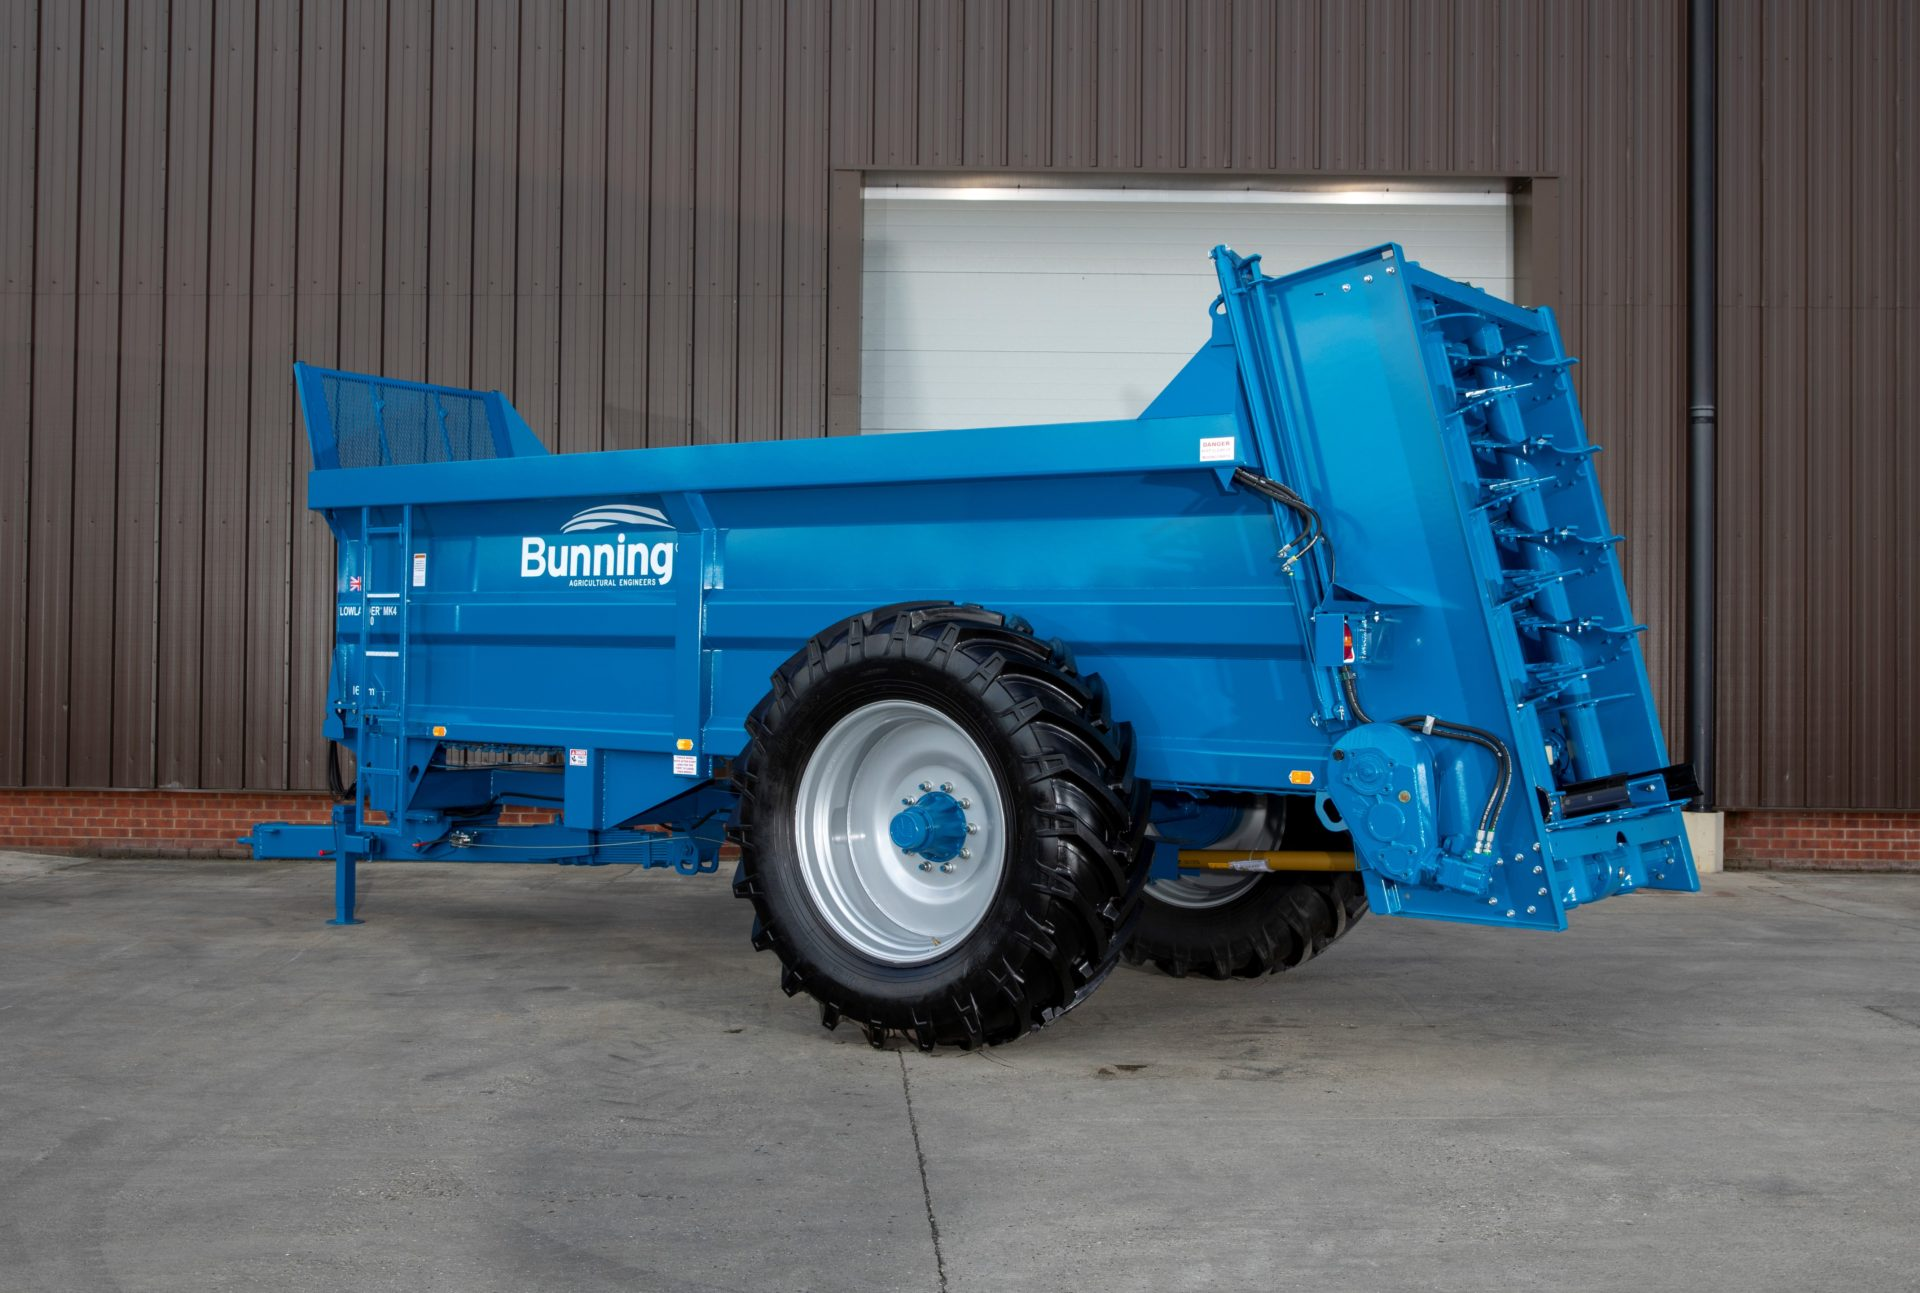 Lowlander 150 Mk4 with sprung drawbar, weigh cell ready, slurry door and 580/70 R38 wheels